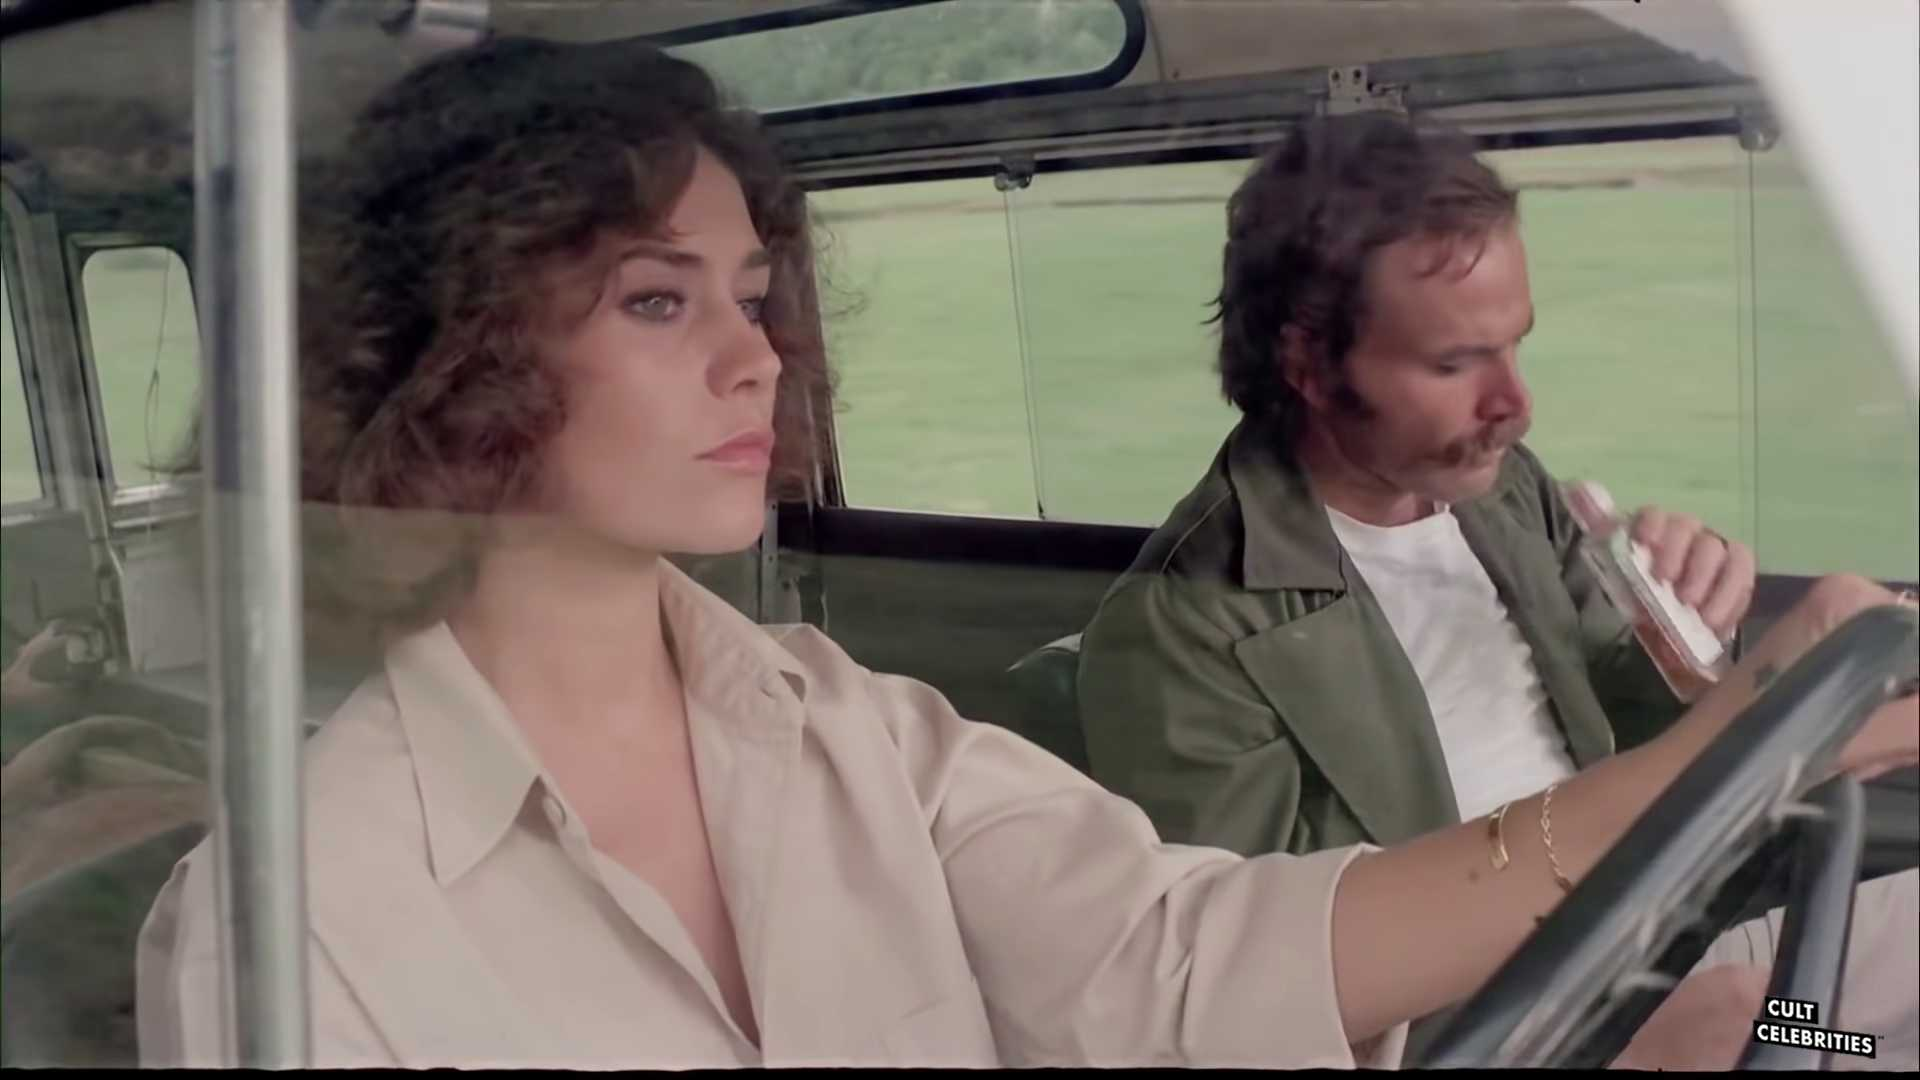 Franco Nero and Corinne Cléry in Hitch-Hike (1977)